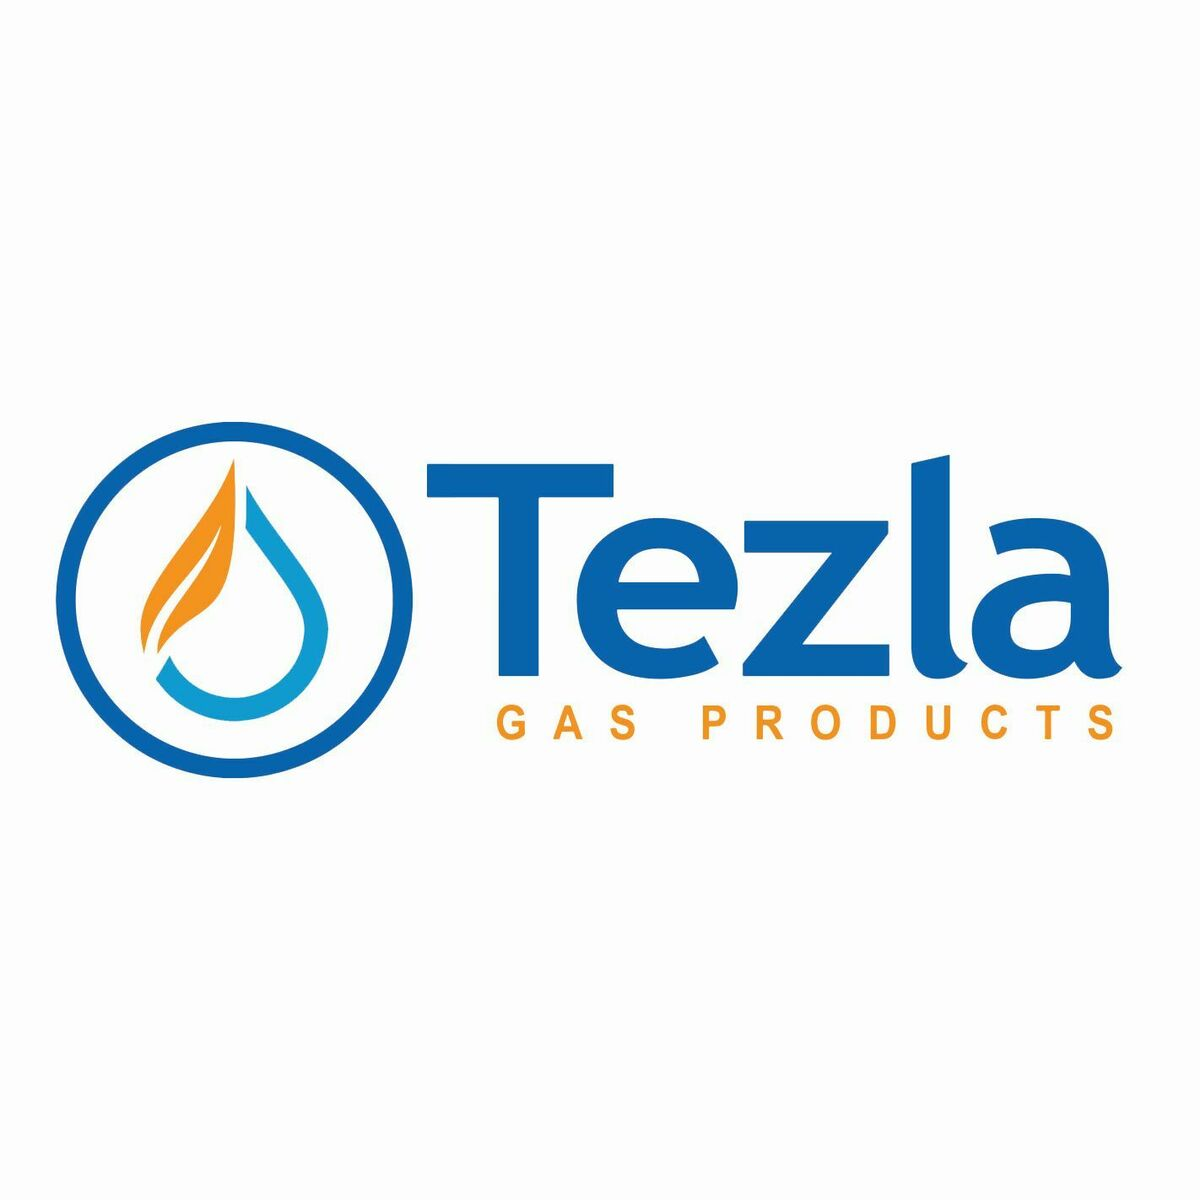 Tezla Gas Products